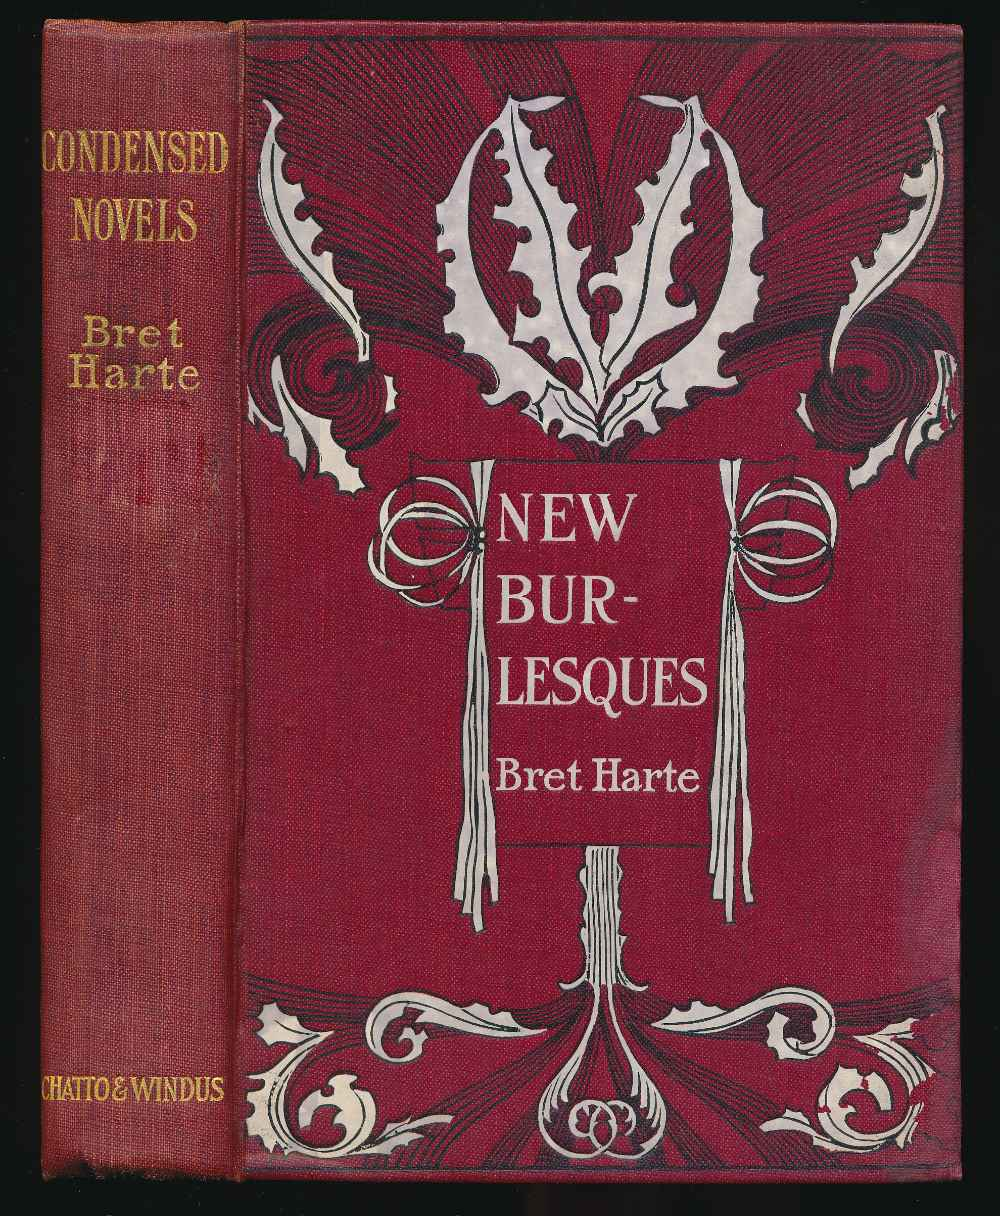 Condensed novels : new burlesques